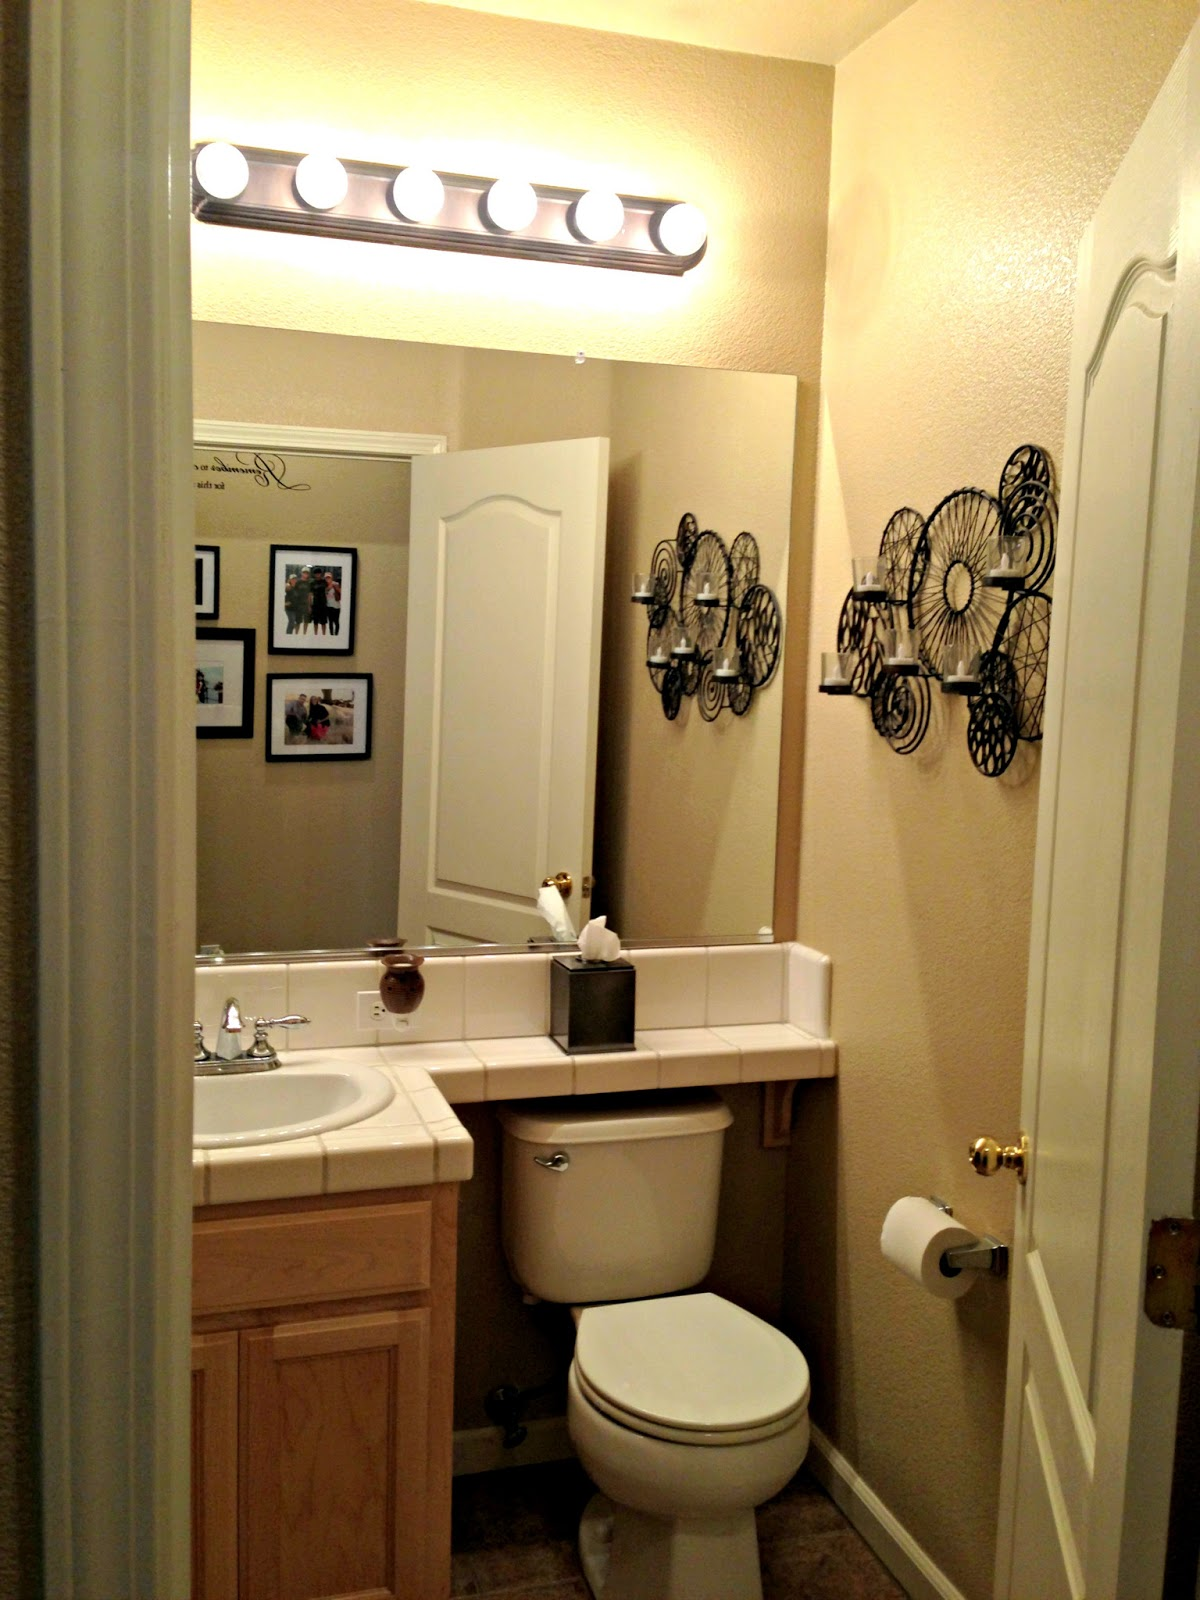 All Things Katie Marie Bathroom Makeover - Gold bathroom light fixtures for bathroom decor ideas